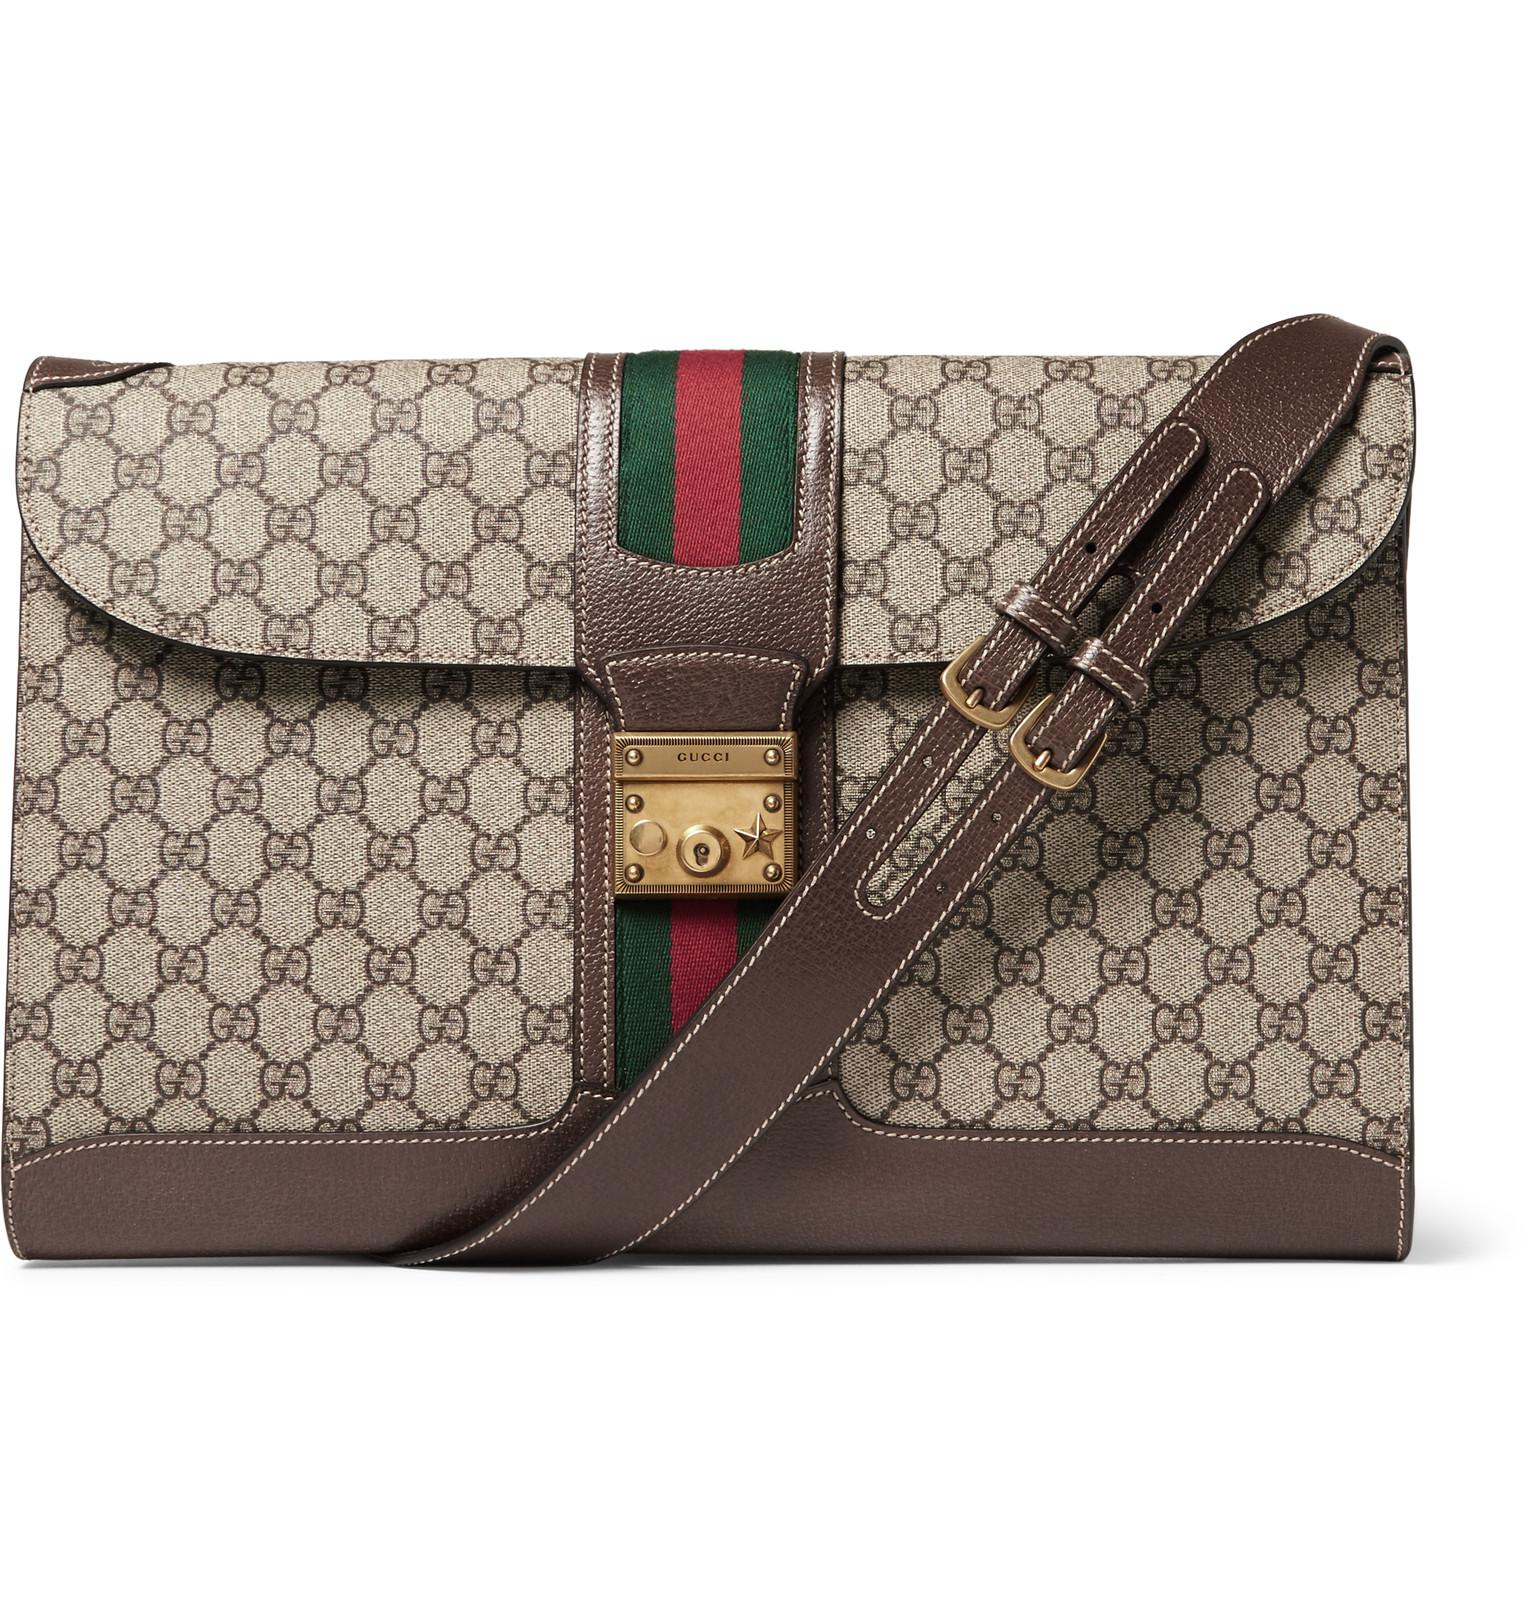 e2d0b85d9bdc18 Gucci Leather-trimmed Monogrammed Coated-canvas Messenger Bag in ...